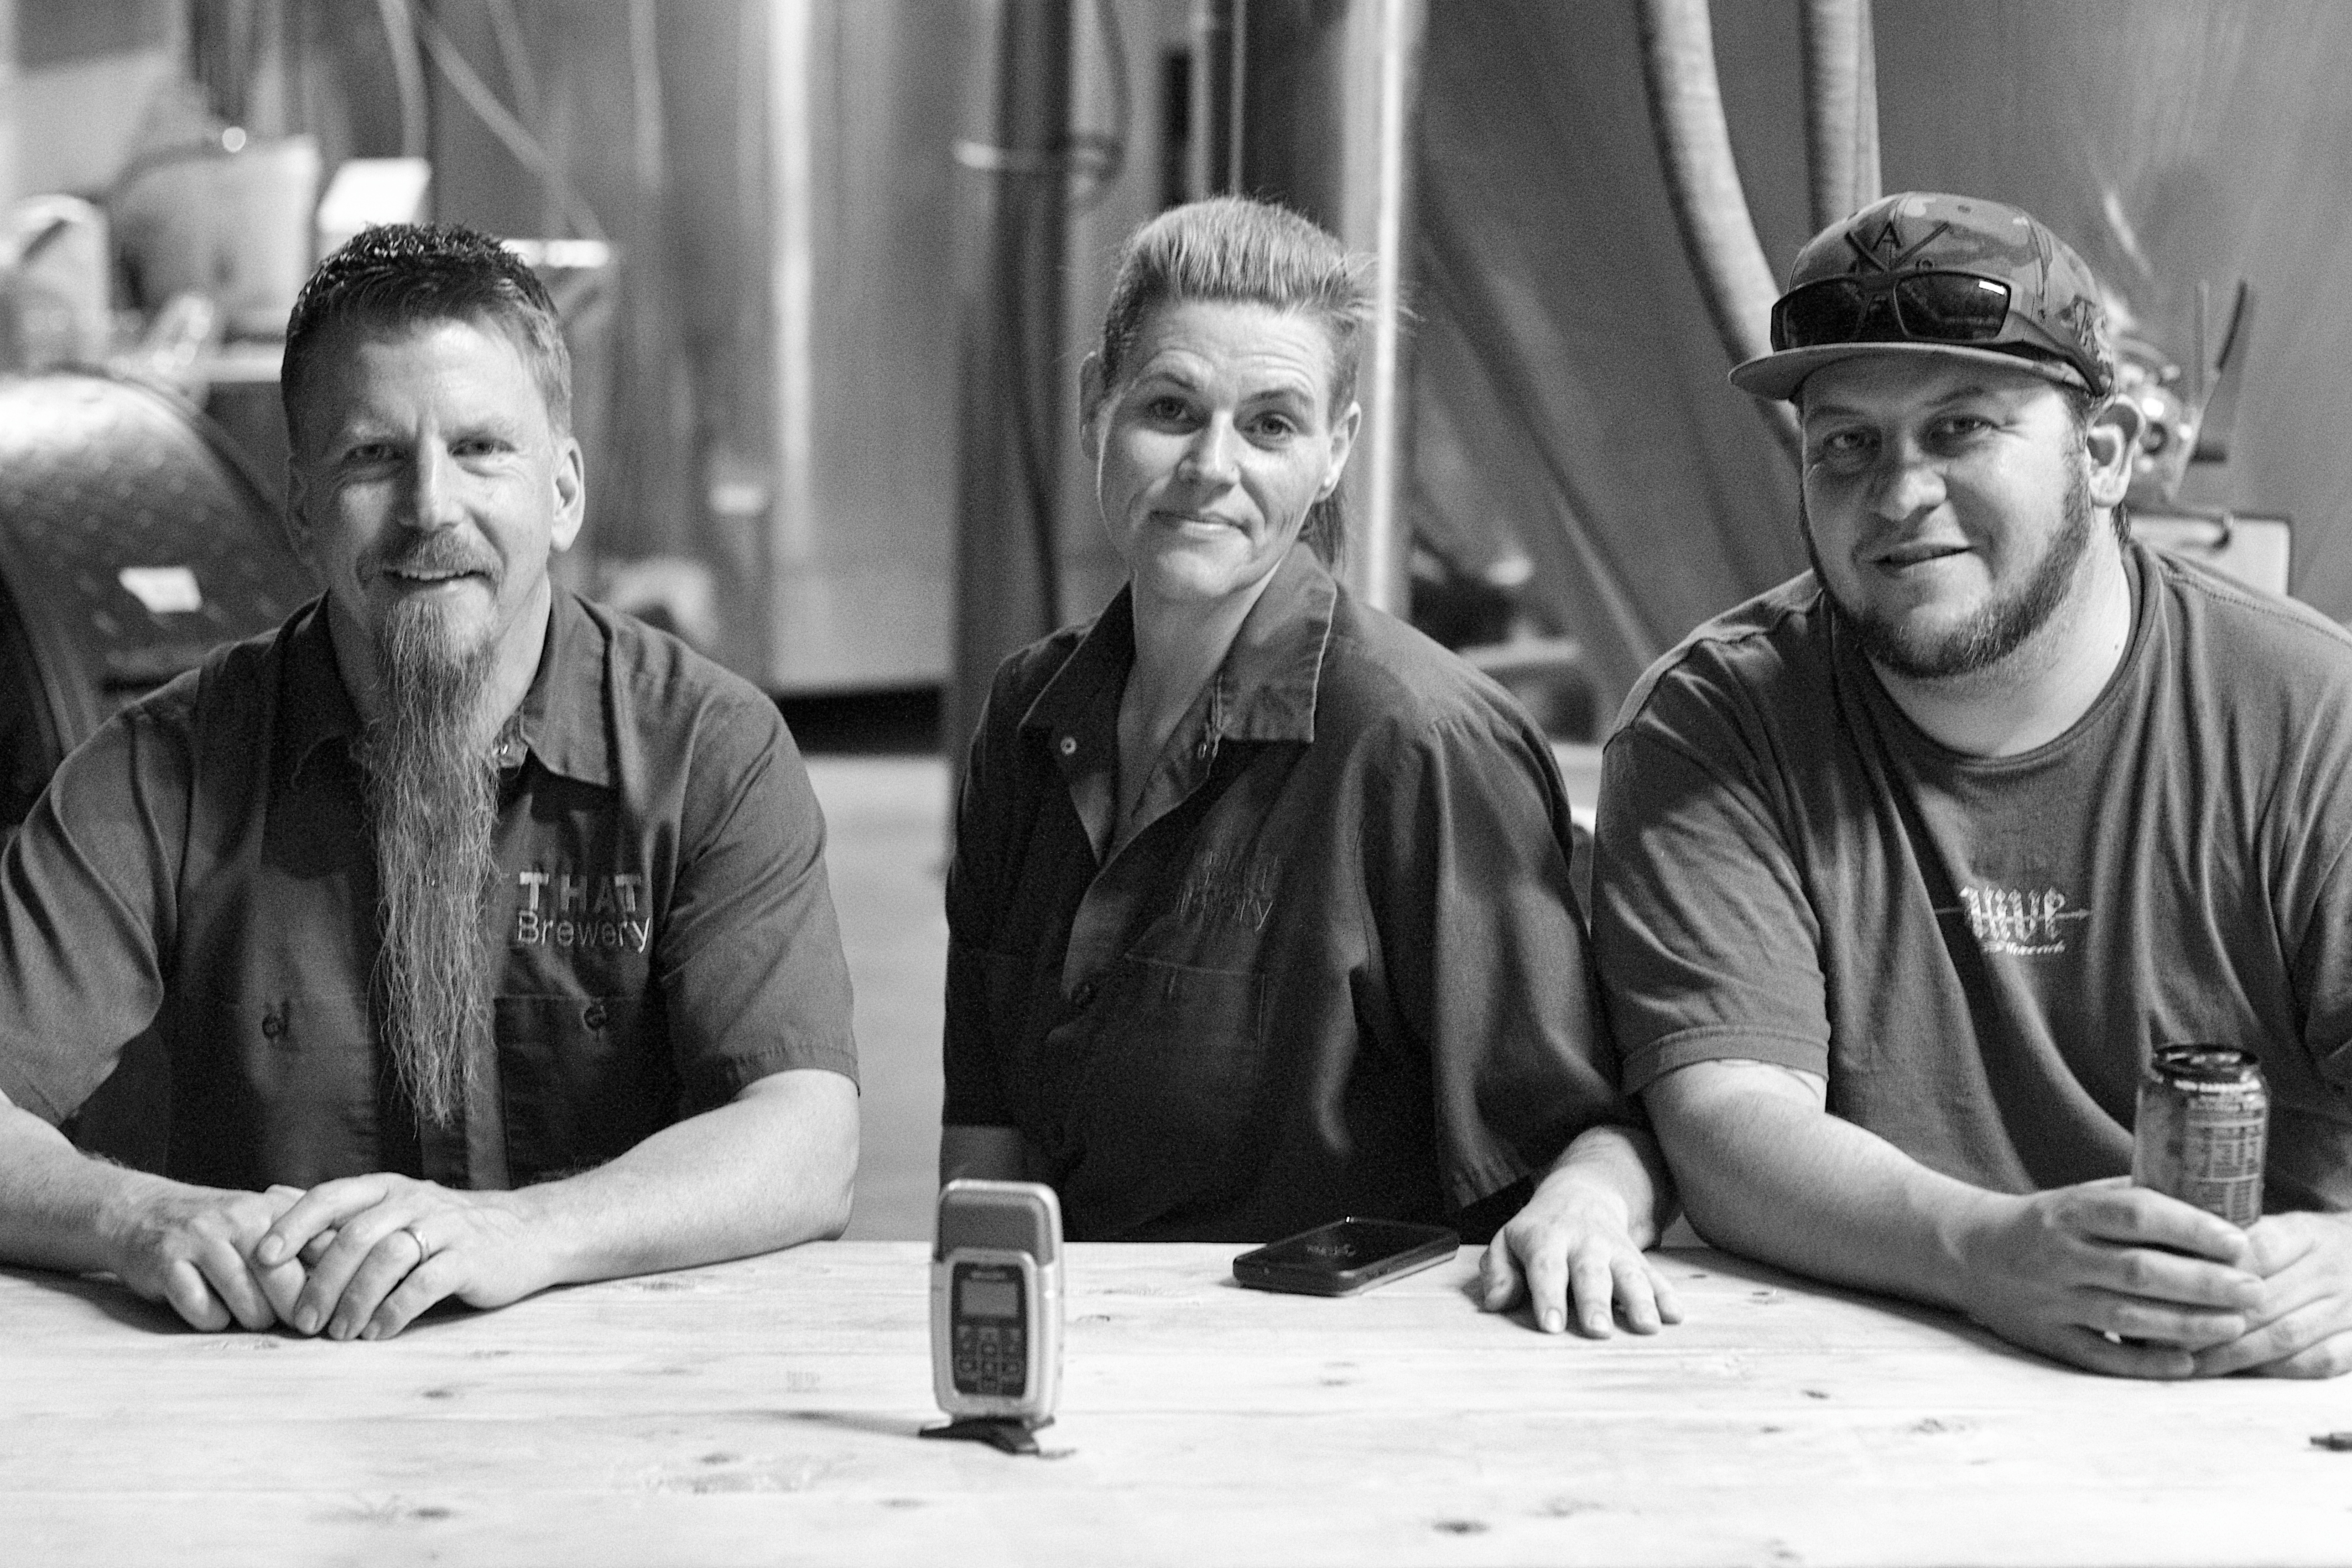 Three THAT Brewers, Groupshot, Monochrome, People, HQ Photo